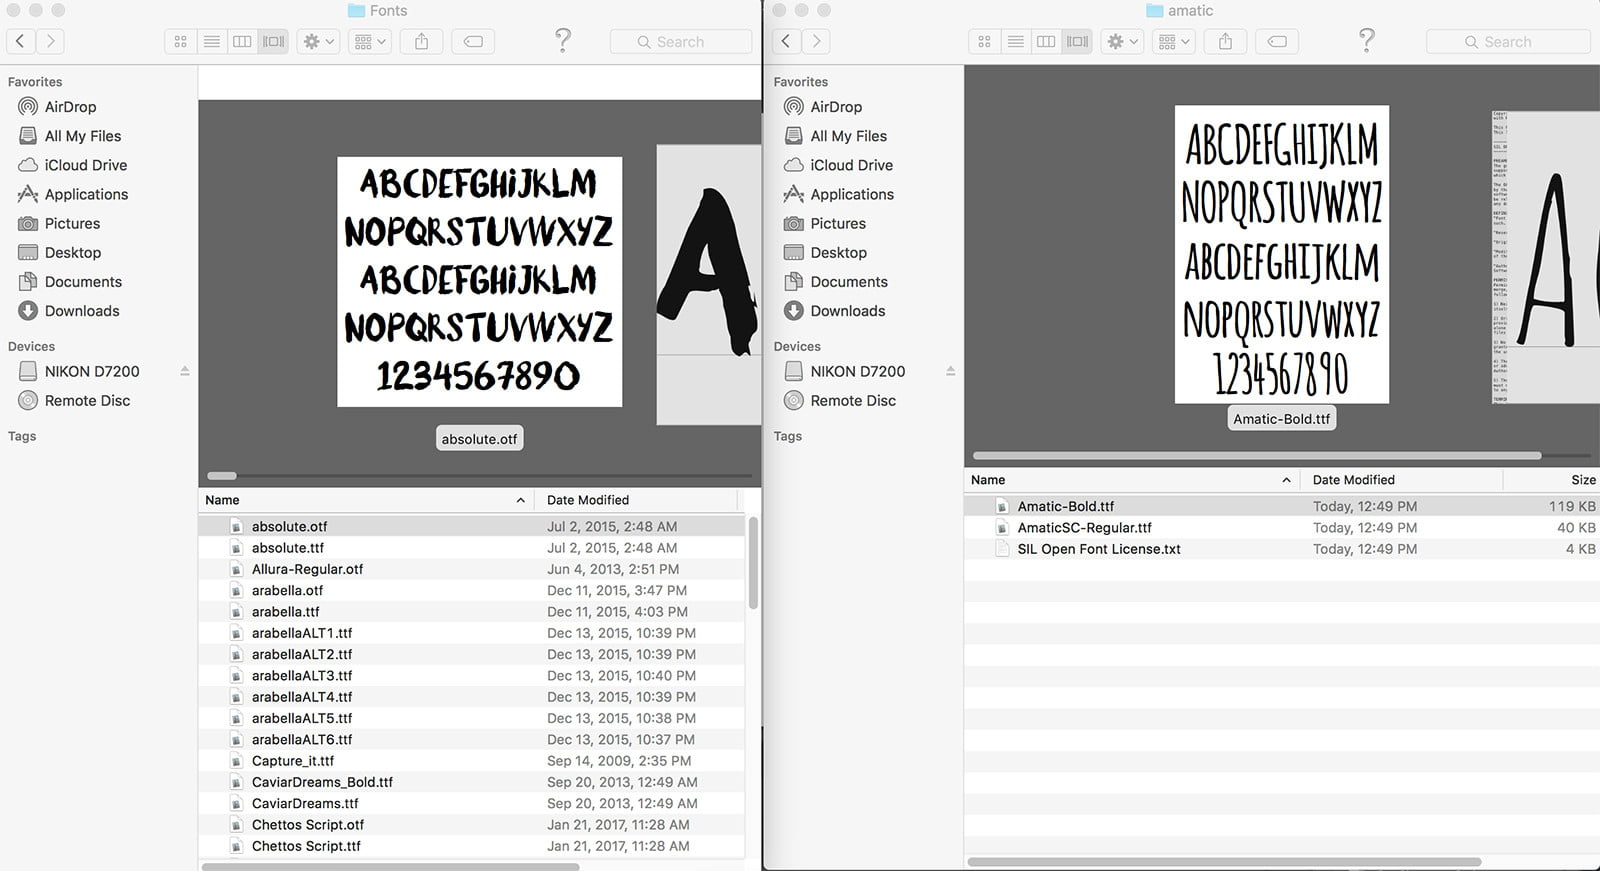 How to add fonts to photoshop from typekit to font downloads how to install fonts in photoshop addfontsonmac ccuart Choice Image